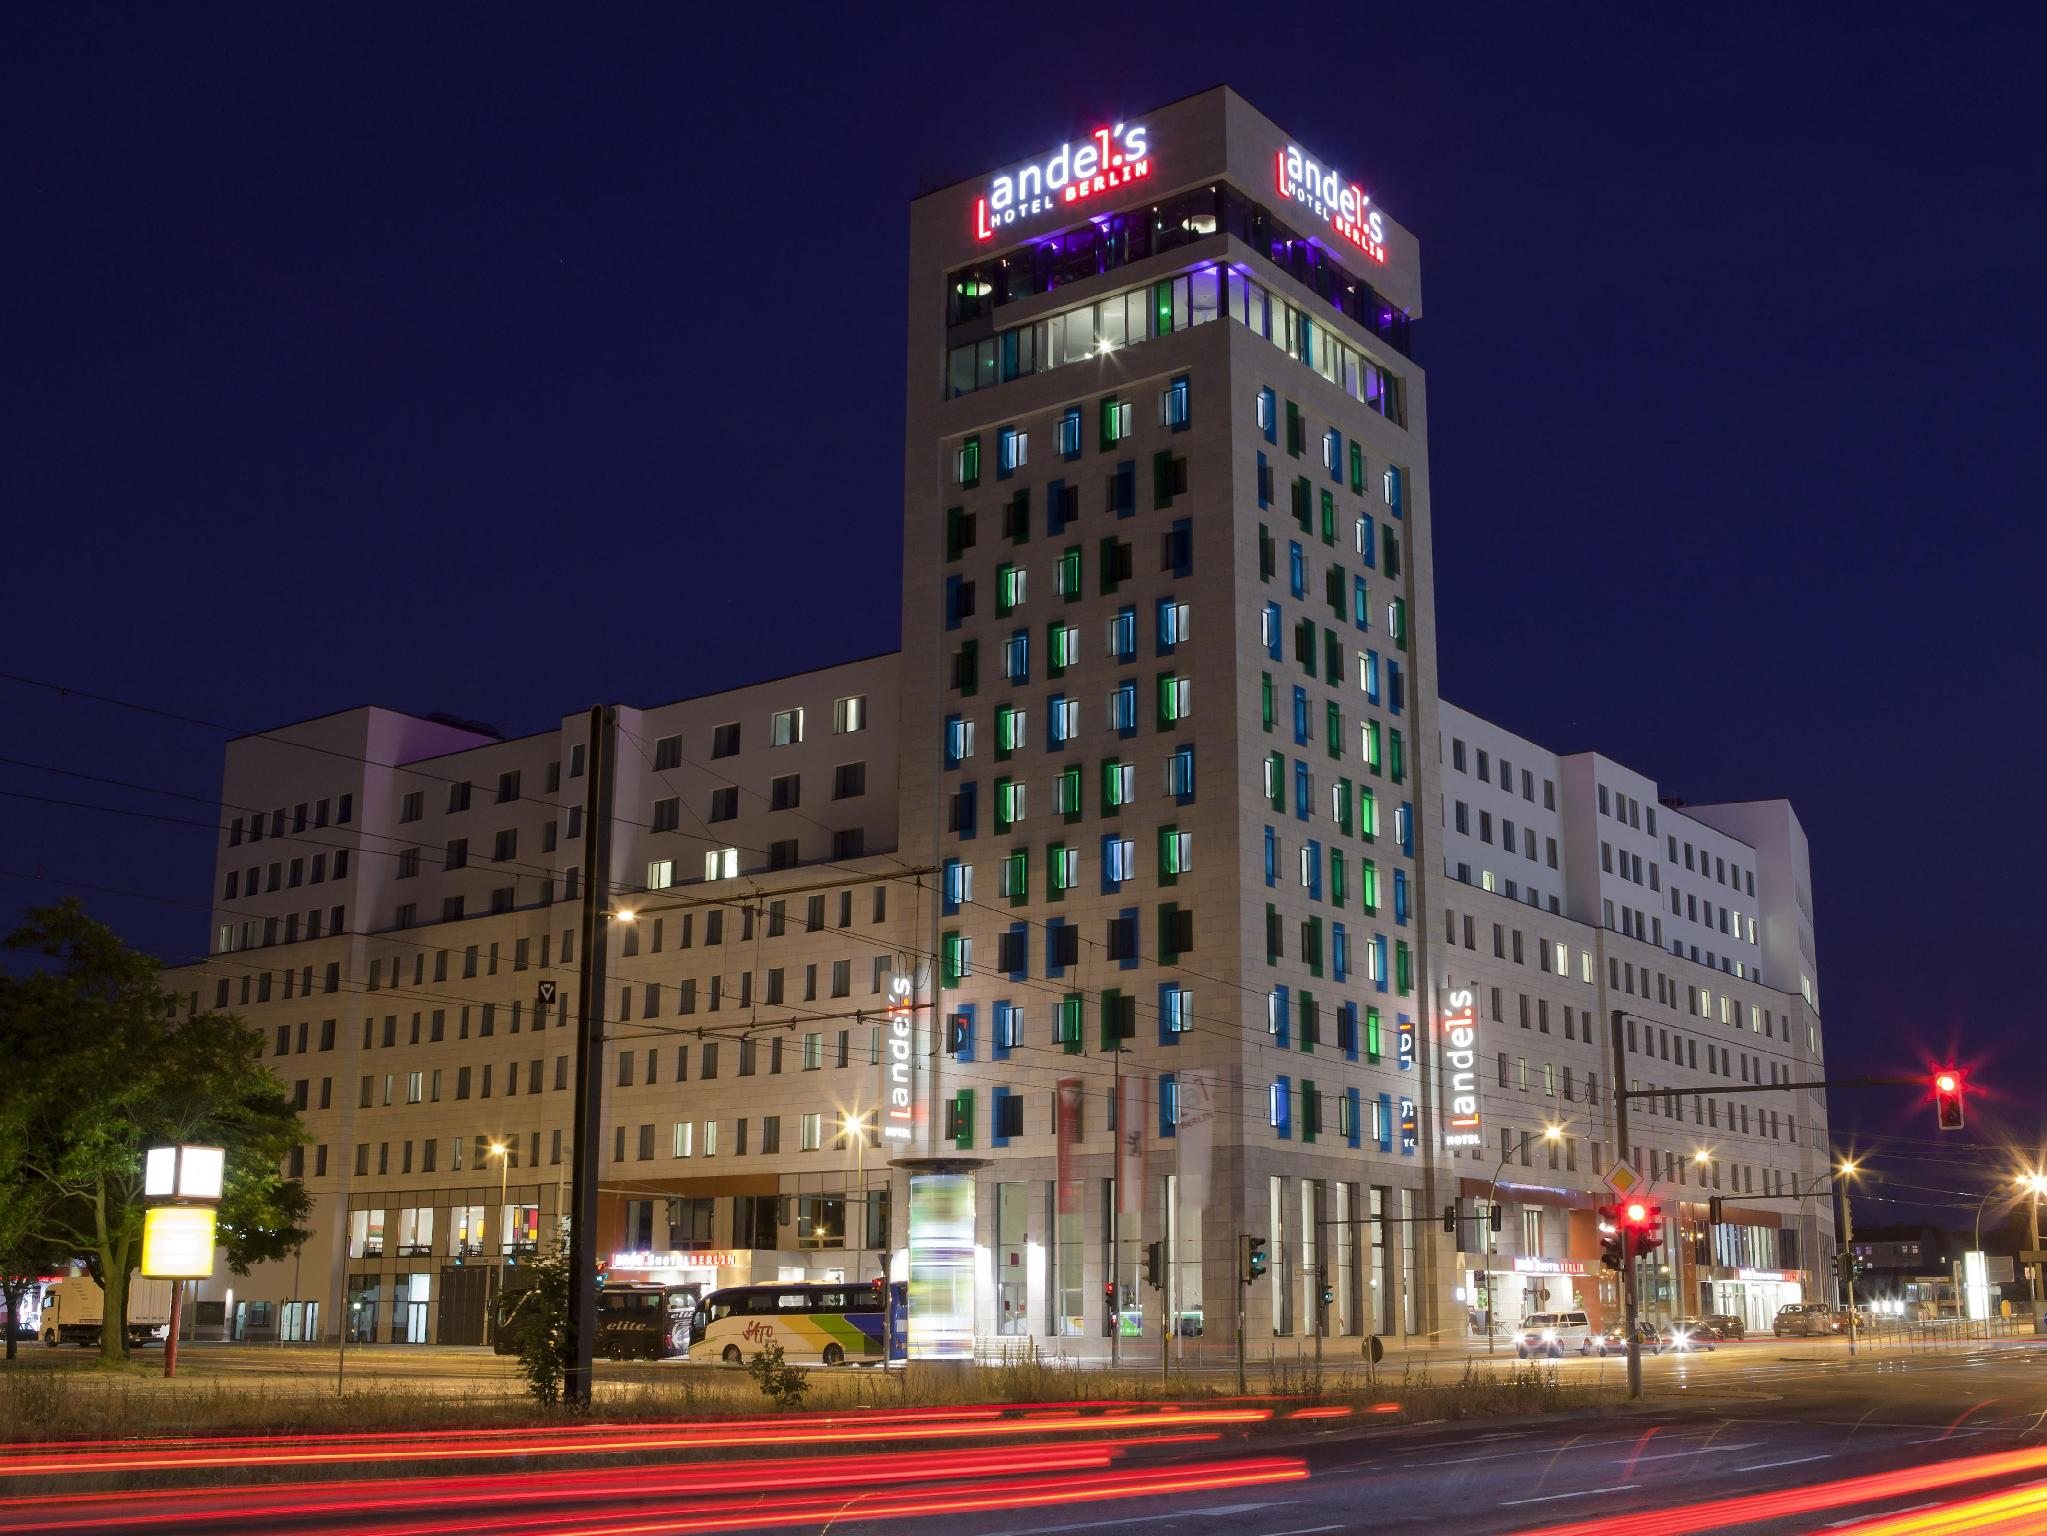 andel's Hotel Berlin, managed by Vienna International Hotels and Resorts Берлін